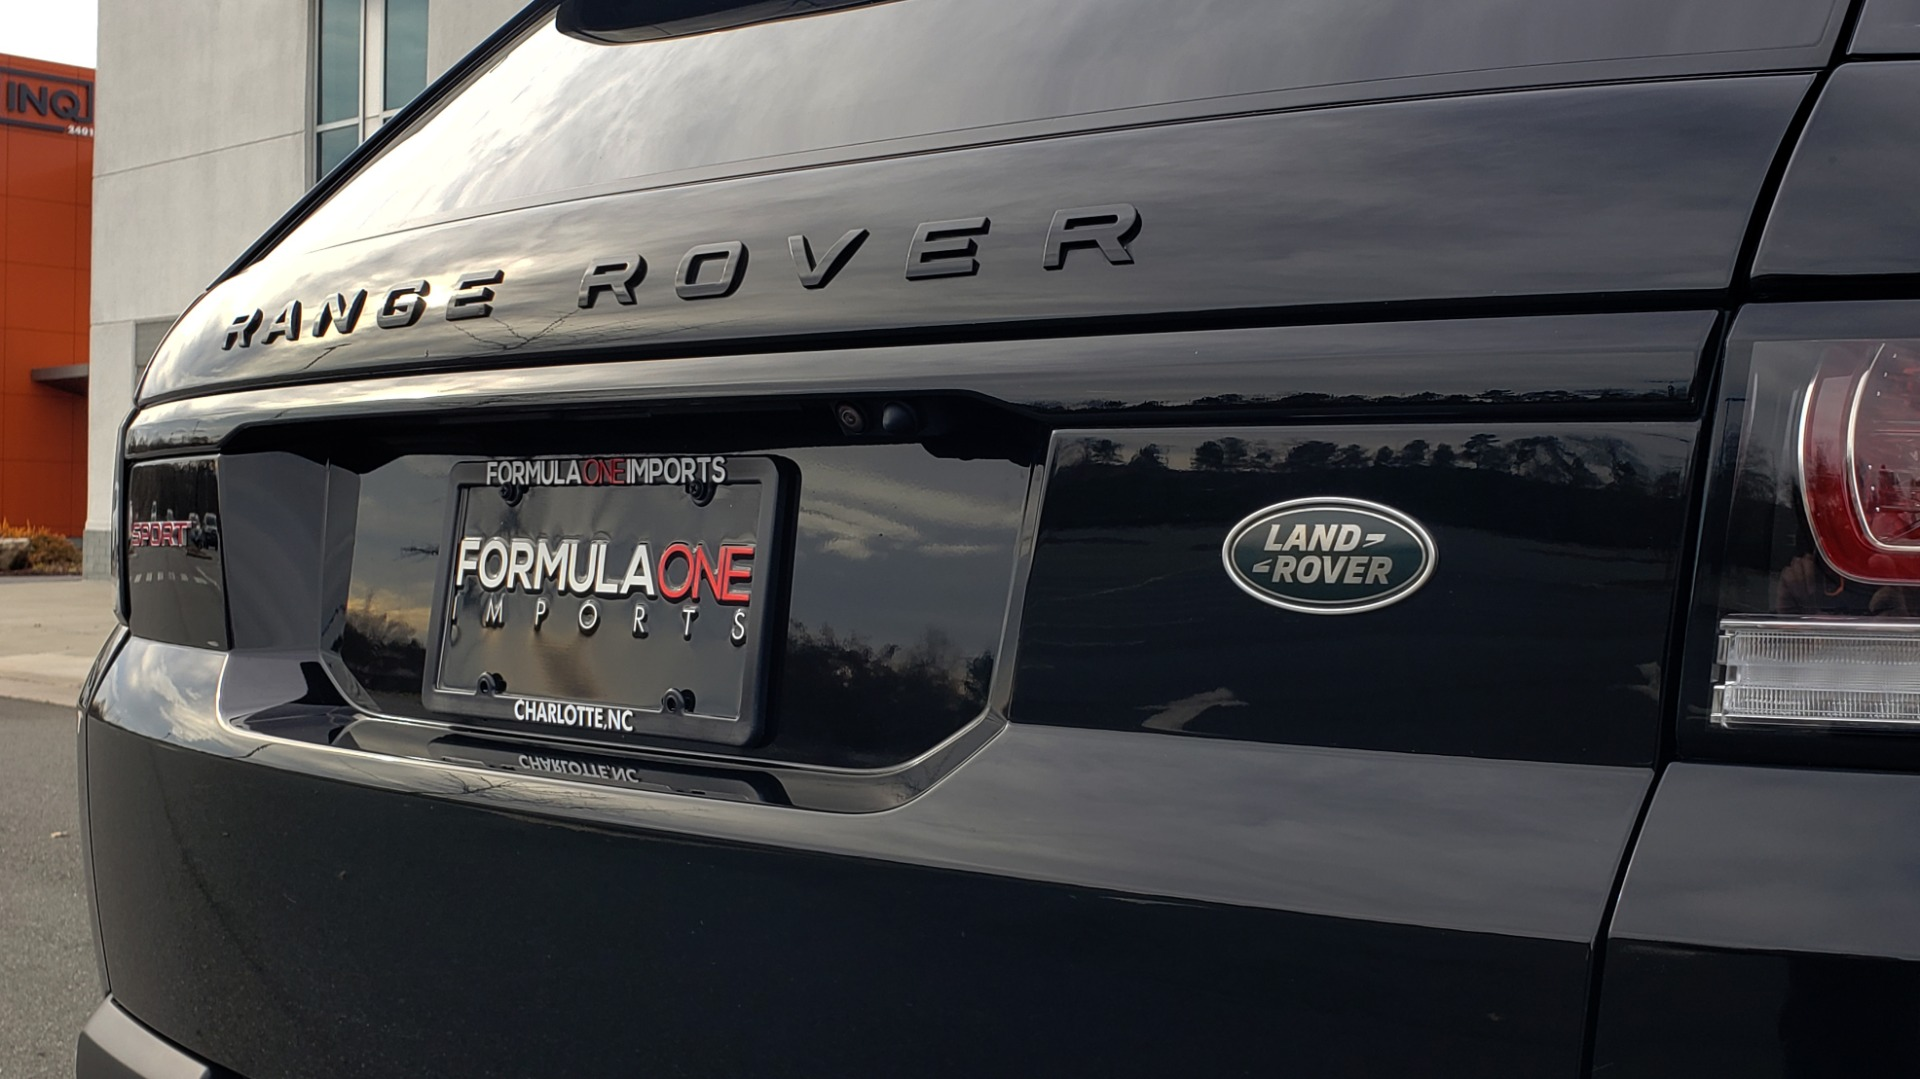 Used 2017 Land Rover RANGE ROVER SPORT HSE DYNAMIC / SC V6 / NAV / MERIDIAN / PANO-ROOF / REARVIEW for sale Sold at Formula Imports in Charlotte NC 28227 132